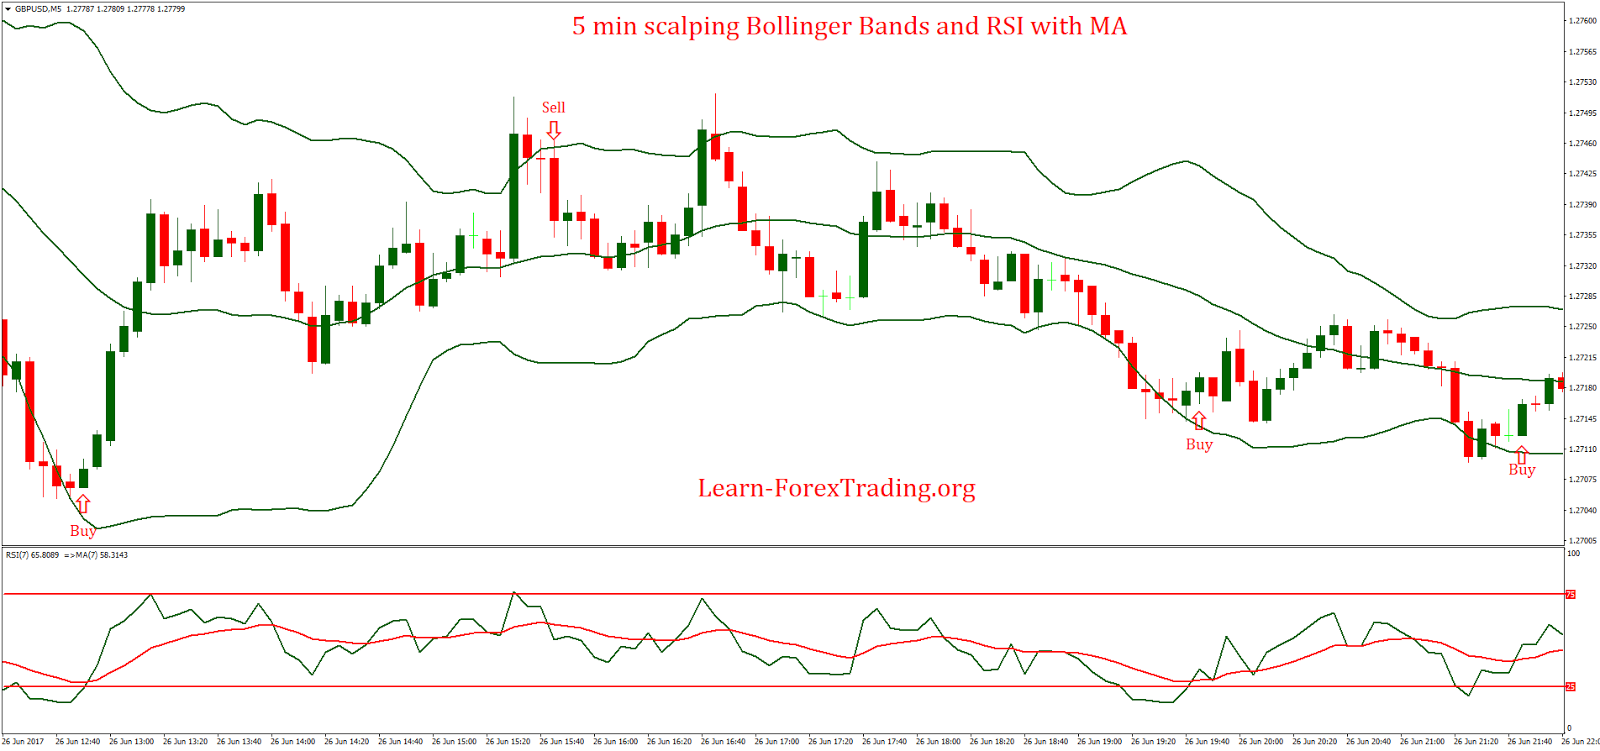 Trading with bollinger bands and rsi